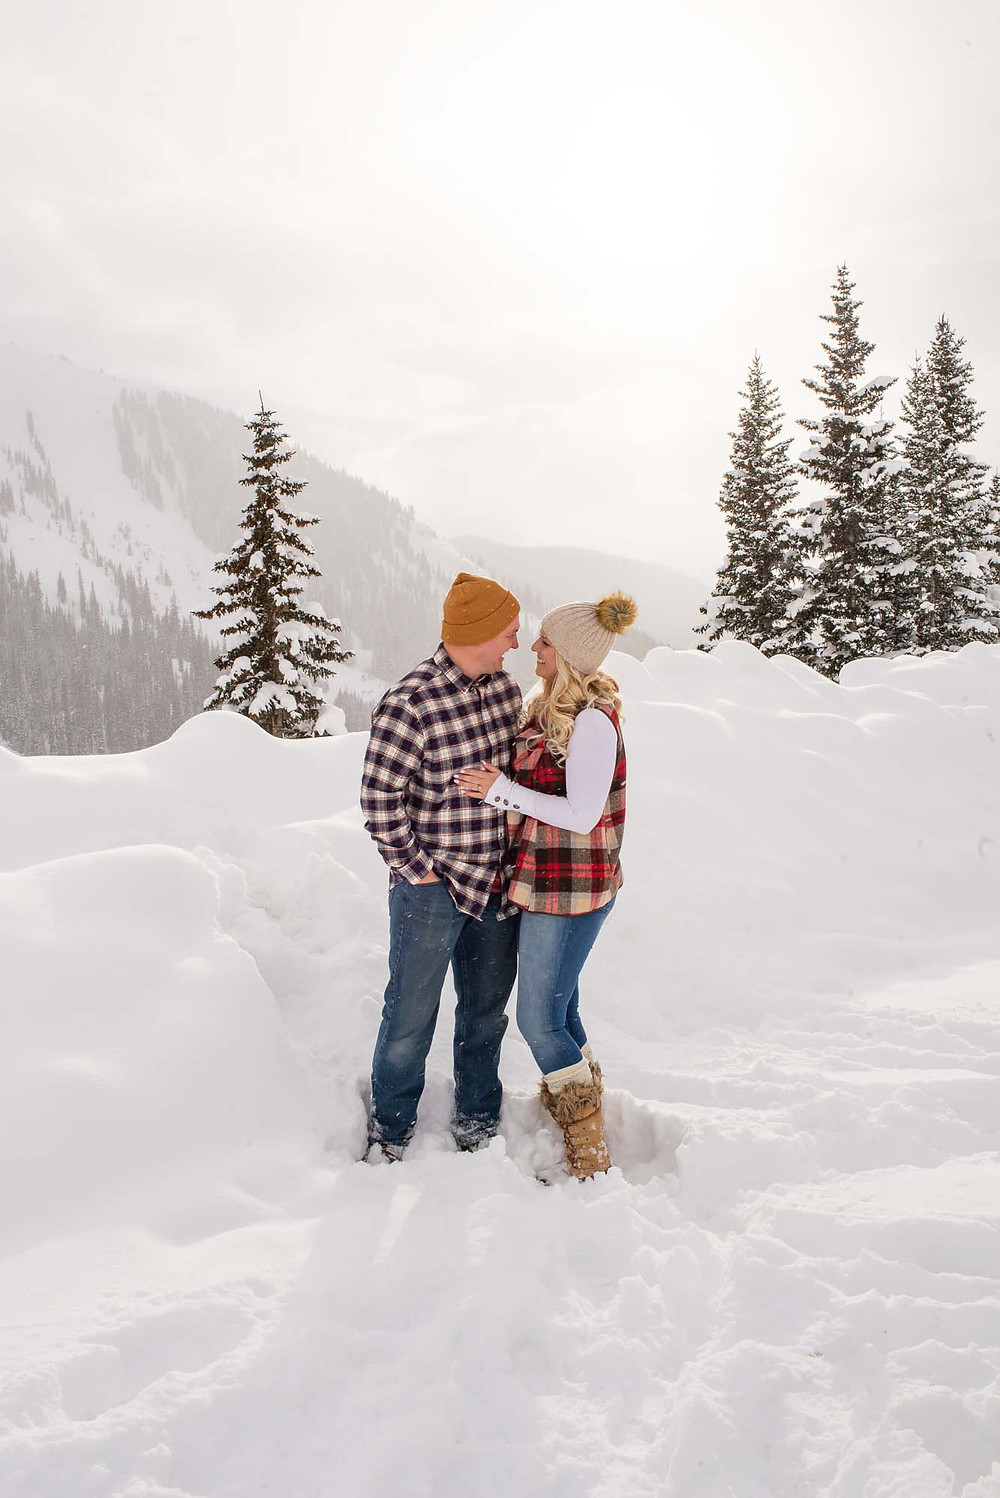 Afternoon Engagement in Colorado Snowy Winter